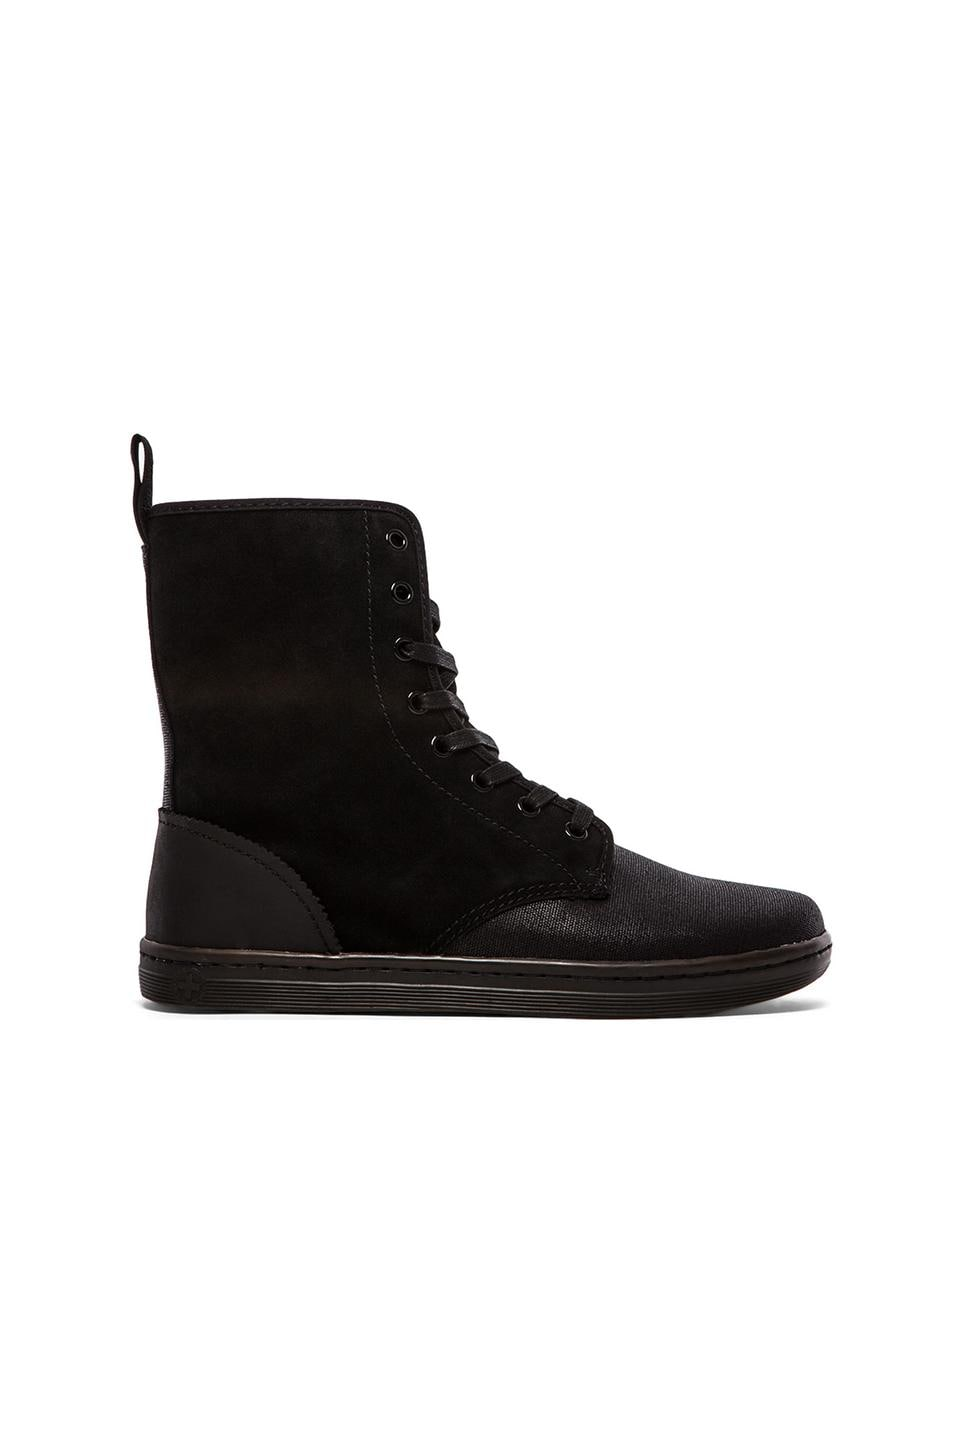 Dr. Martens Kingsley Fold Down in Black